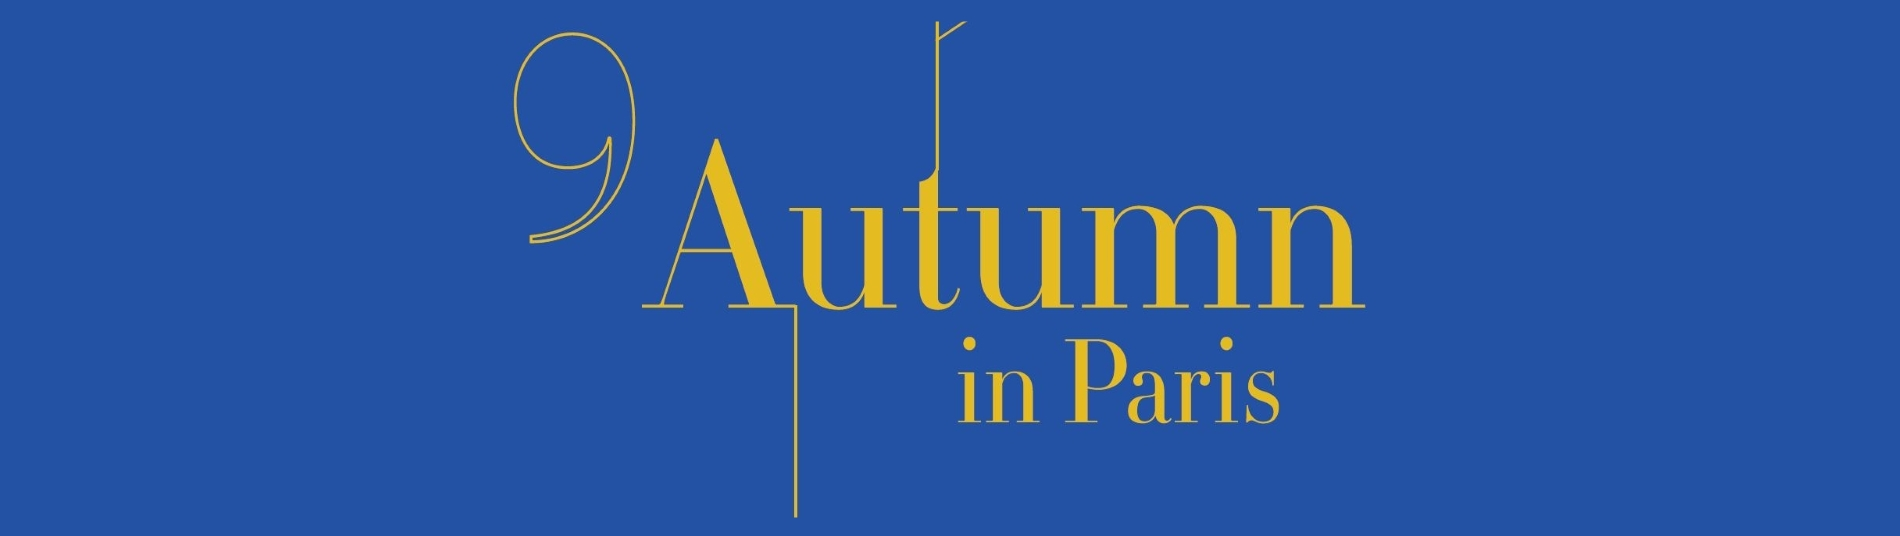 AFMO Event: Autumn in Paris! Guest of Honor Jeffrey Katzenberg